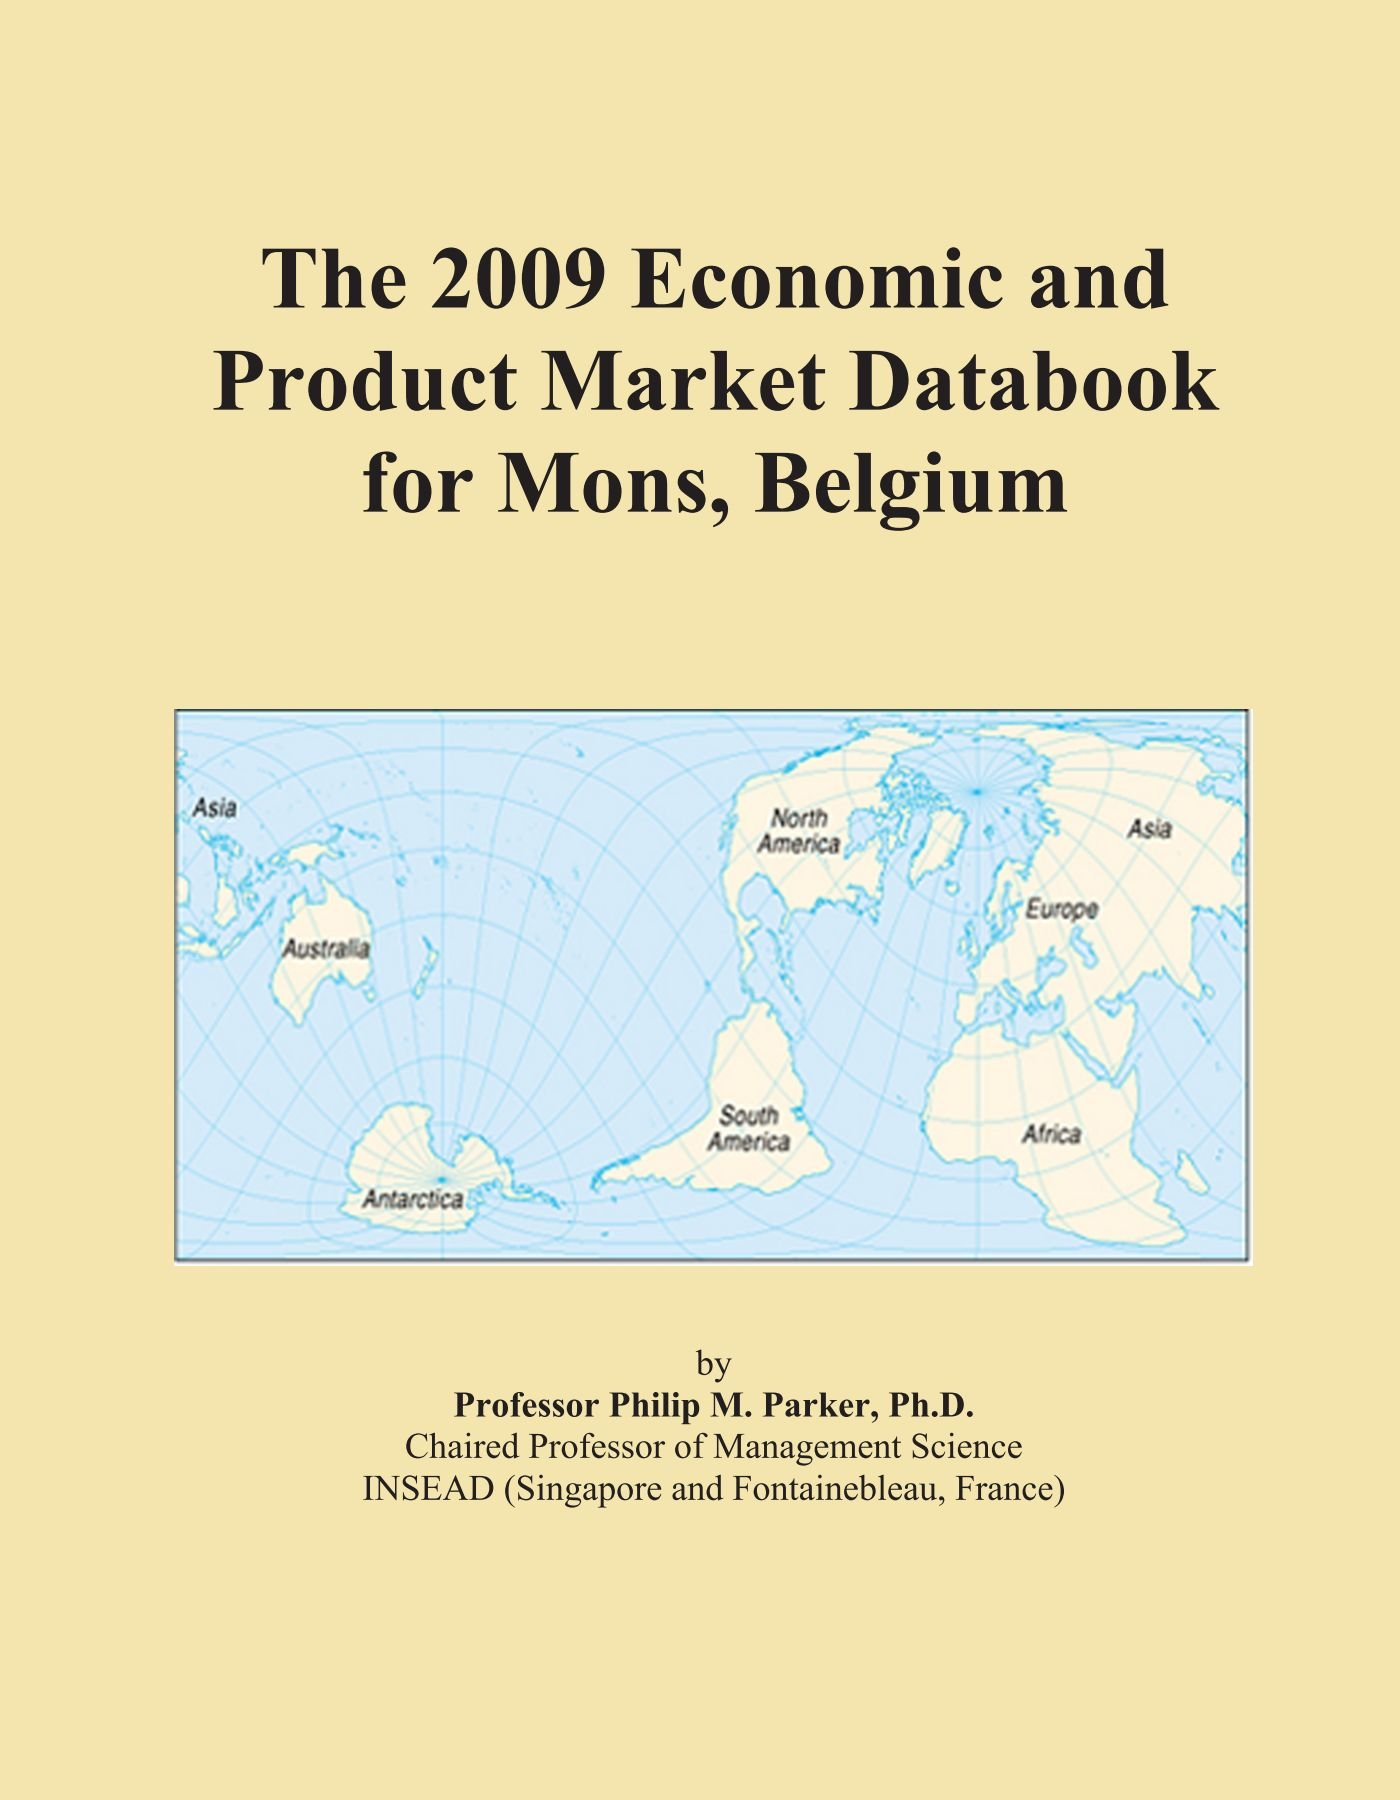 The 2009 Economic and Product Market Databook for Mons, Belgium pdf